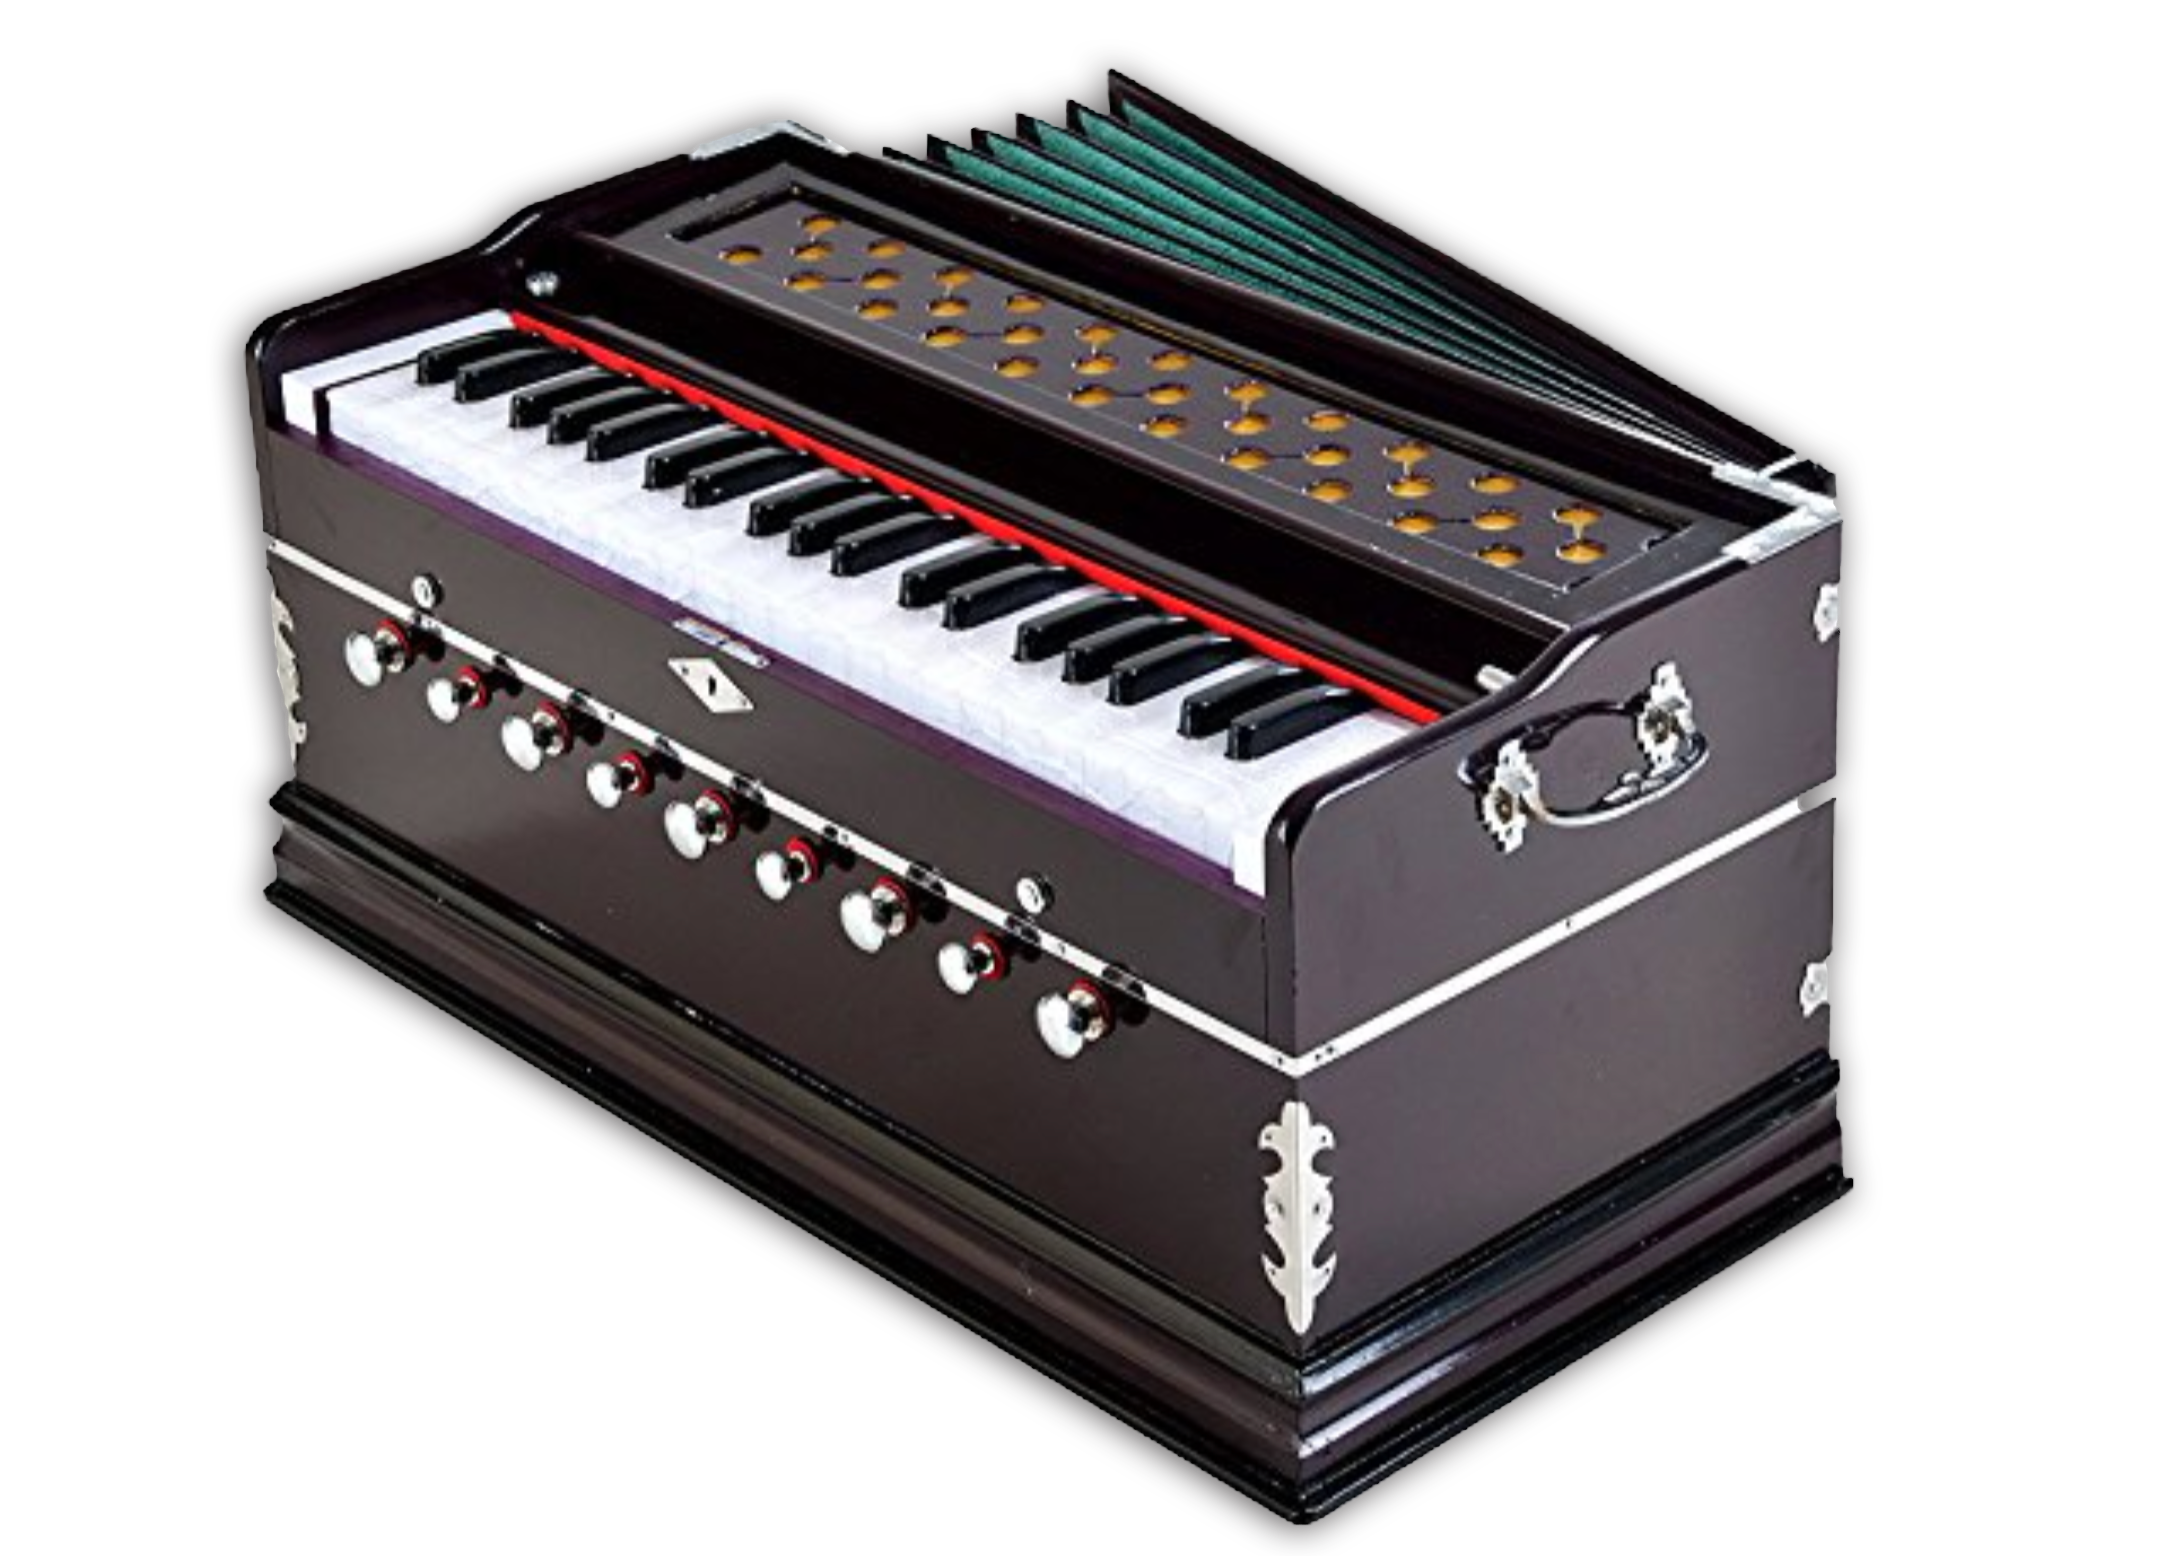 Harmonium - The harmonium is an instrument that is indispensable in India and that is used inthe religious field, in classical music, in folklore and for playing within the family. Itowes its popularity mainly to its easy handling. The harmonium can be compared inits functioning to the accordion. Air is pumped into an enclosed space by means ofbellows. With a keyboard it is possible to open specially defined holes, throughwhich the pumped air is then pressed. The reeds attached to the openings (double,triple or quadruple reeds) are set vibrating and so produce the desired note.